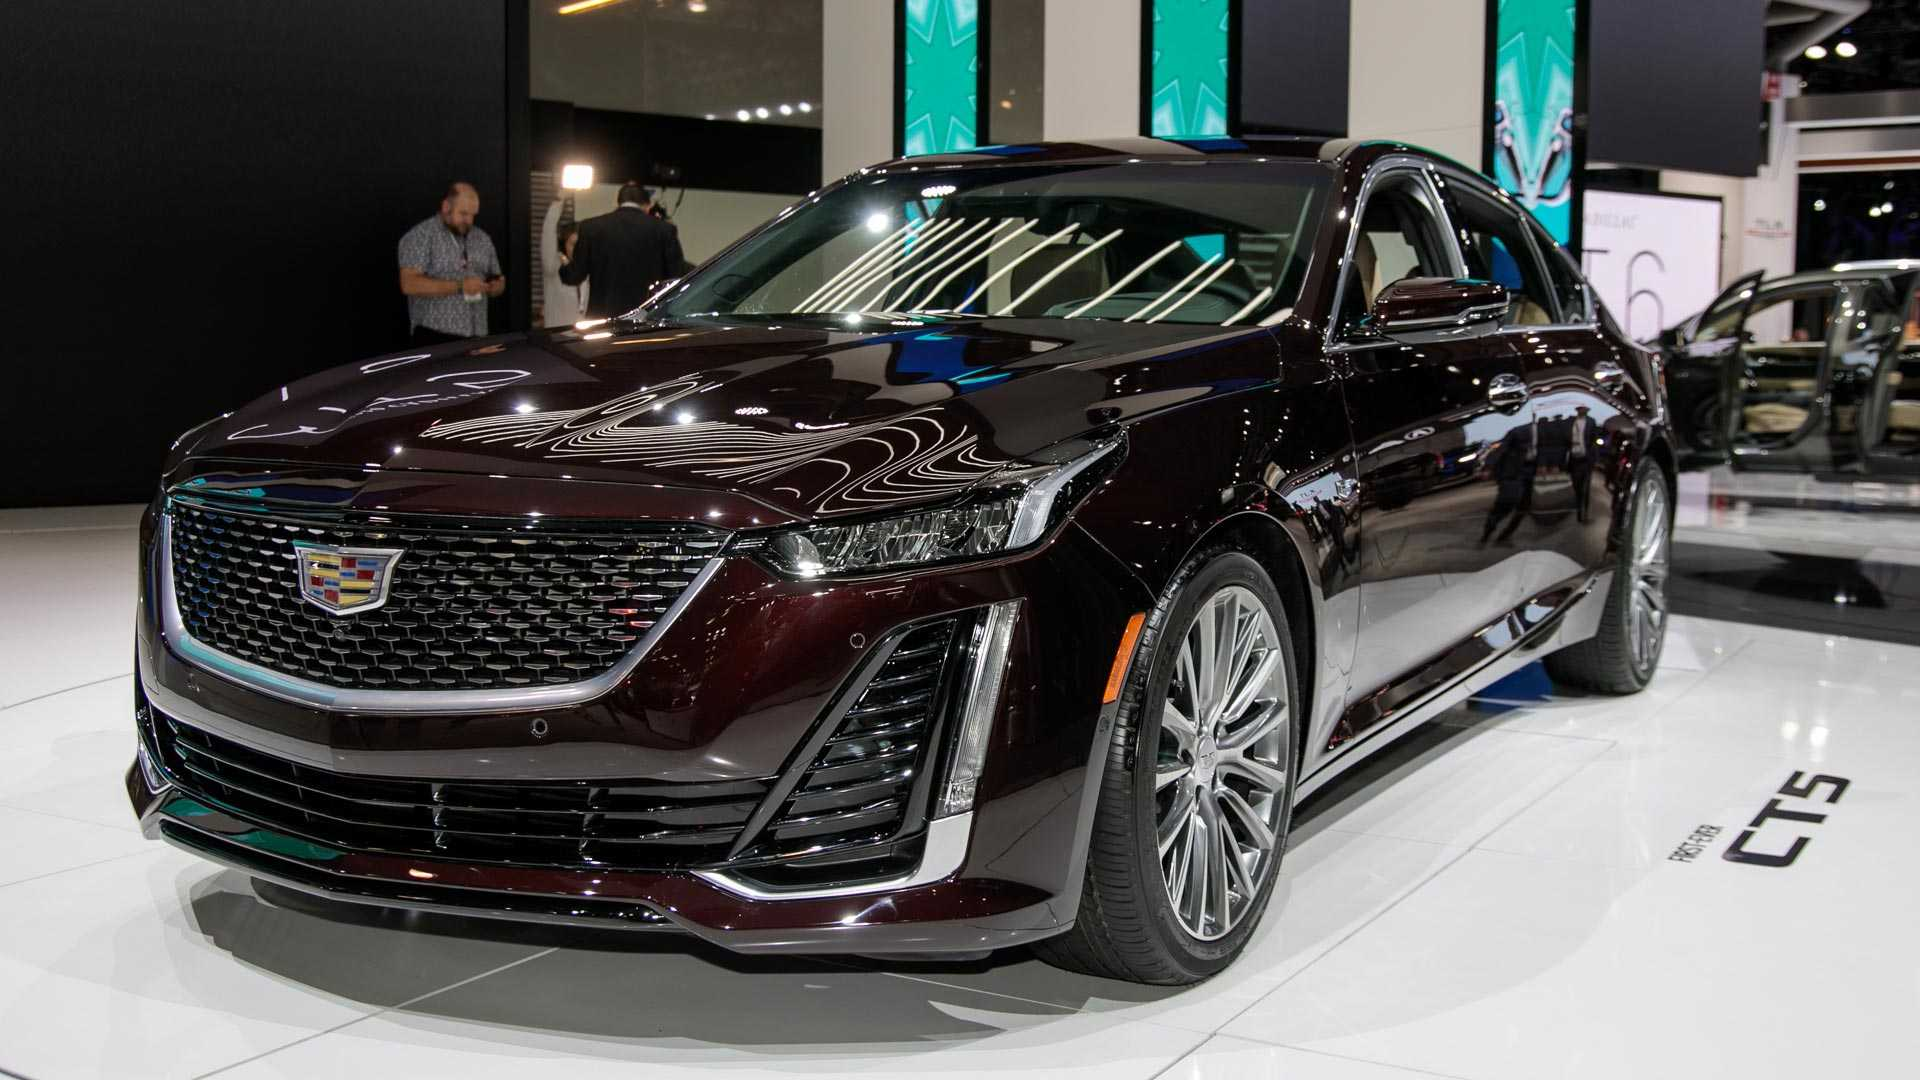 38 Best Photos Of 2020 Cadillac Ct5 Performance